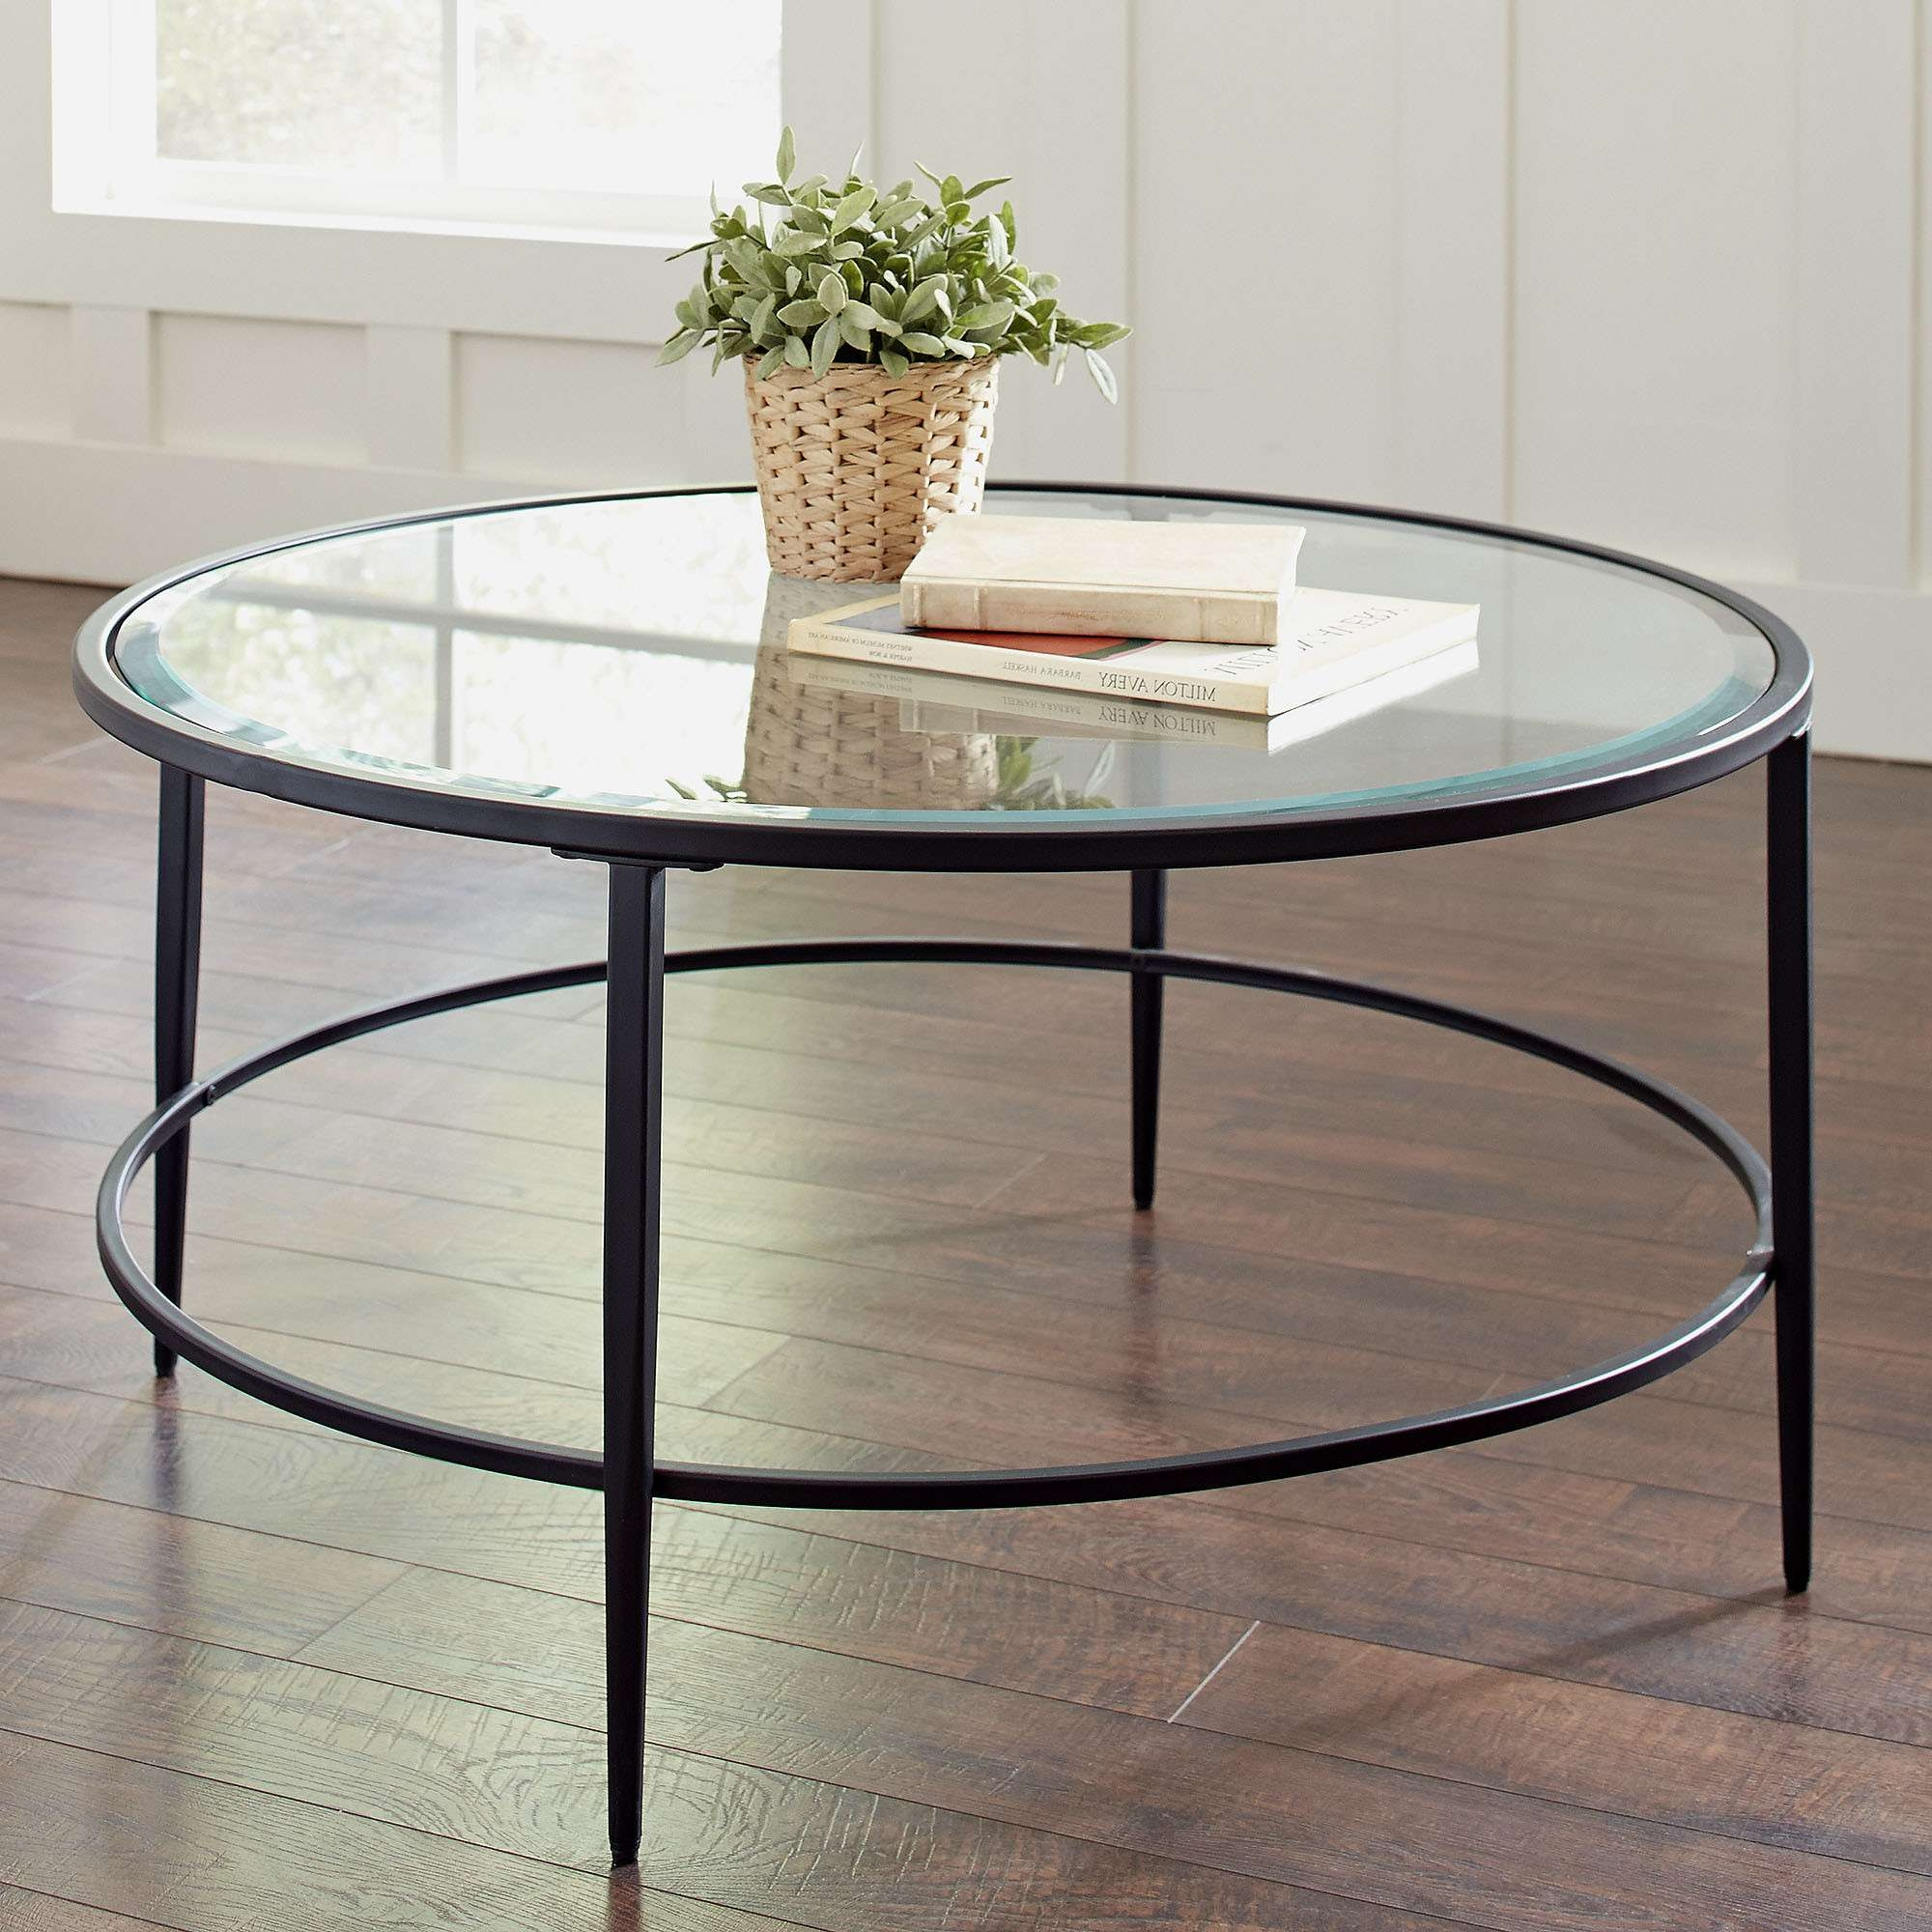 2018 Glass Coffee Table With Shelf Within Coffee Table : Magnificent Black Modern Coffee Table Modern Glass (View 4 of 20)